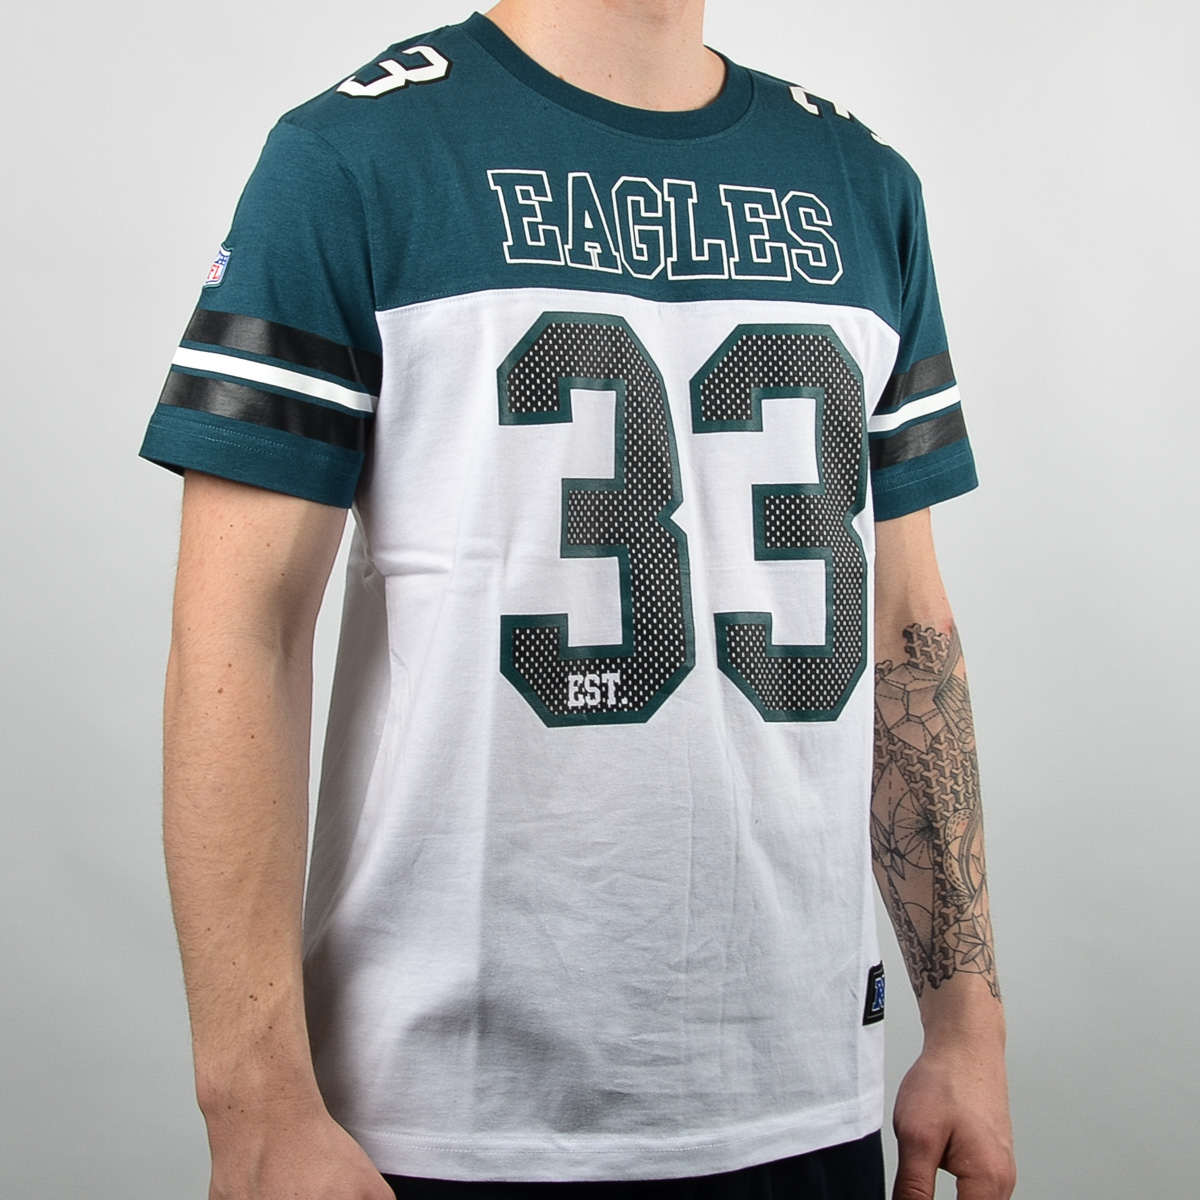 Majestic NFL Philadelphia Eagles Grapher Coach Tee - MLB NFL NHL SHOP NFL  American Football Merchandise - Superfanas.lt a063b9551